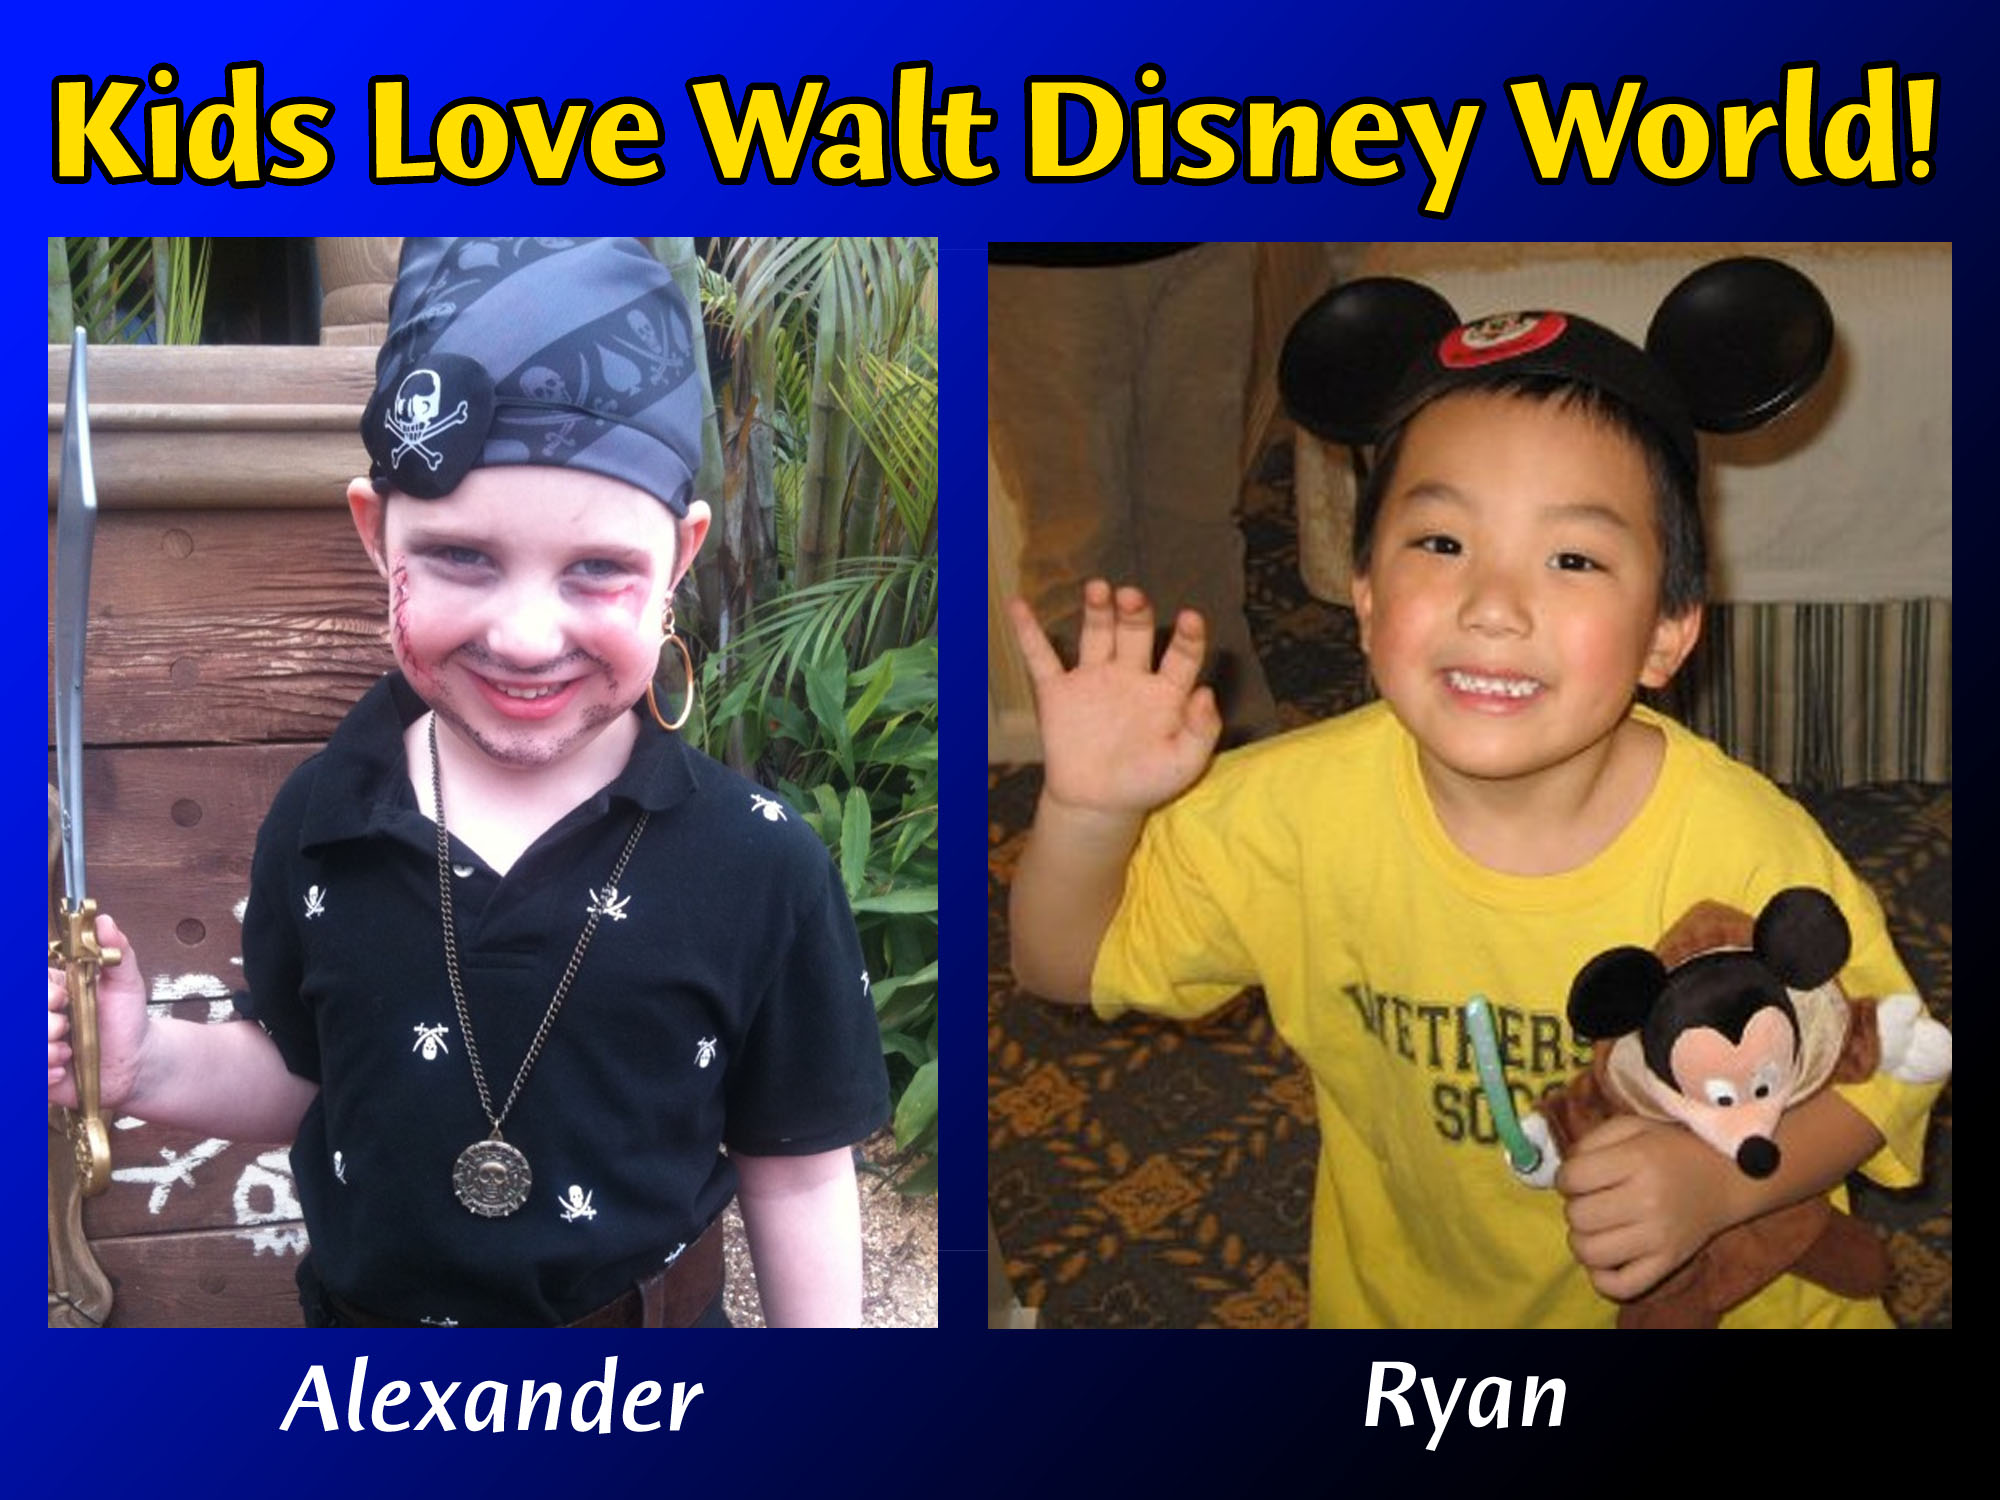 Kids Love Walt Disney World! photo